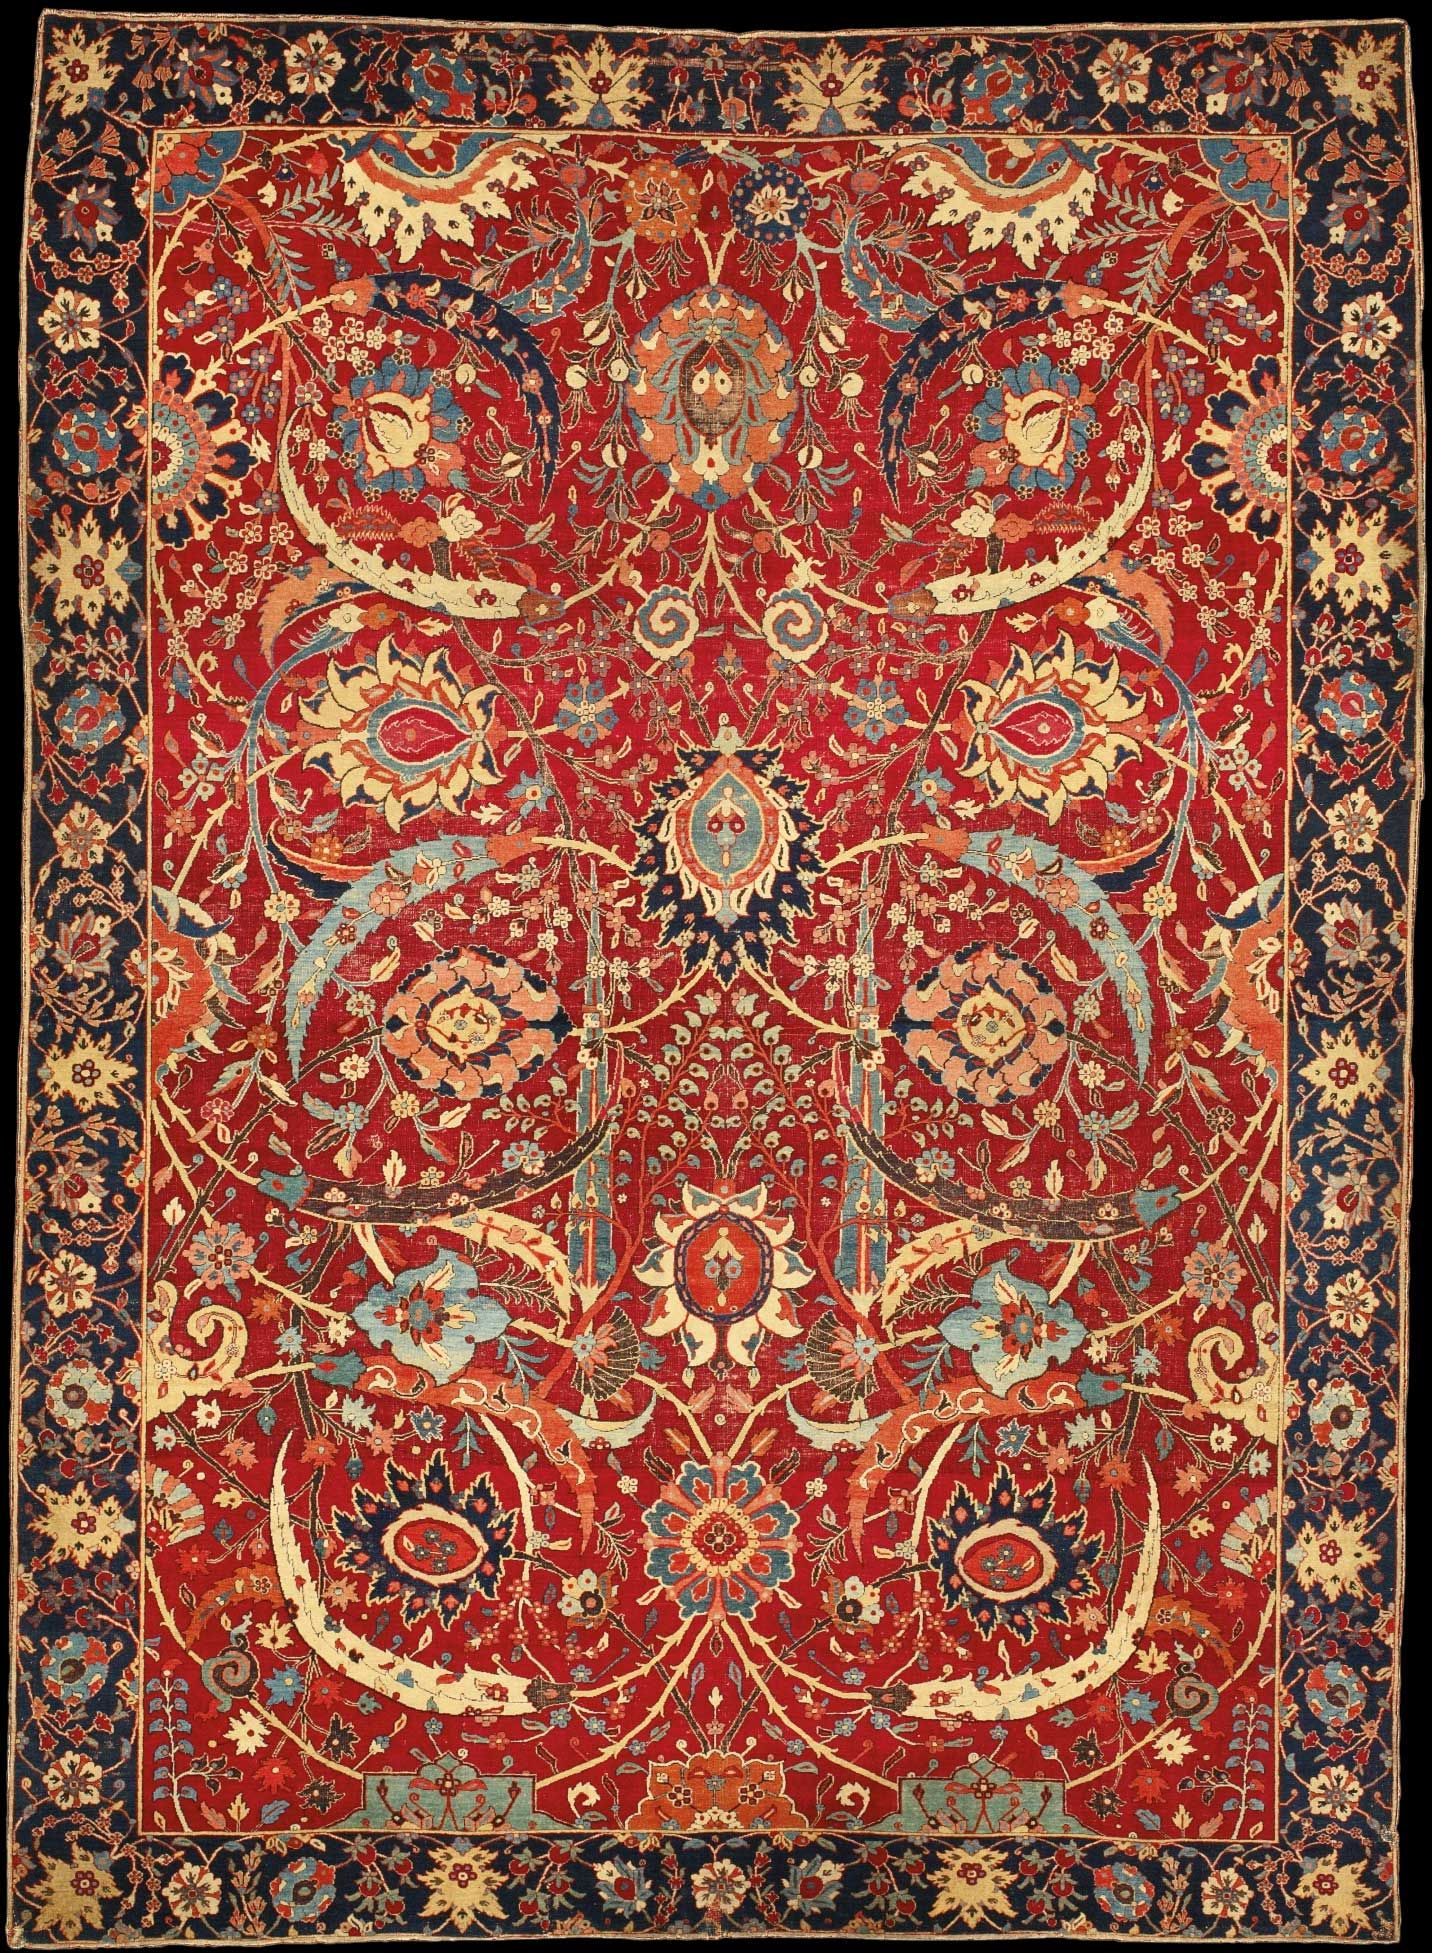 Nazmiyal Collection Nyc Historical Event 34 000 Vase Carpet S At Sotheby Top 10 Most Expensive Carpets In The World Ziegler Mahal 3